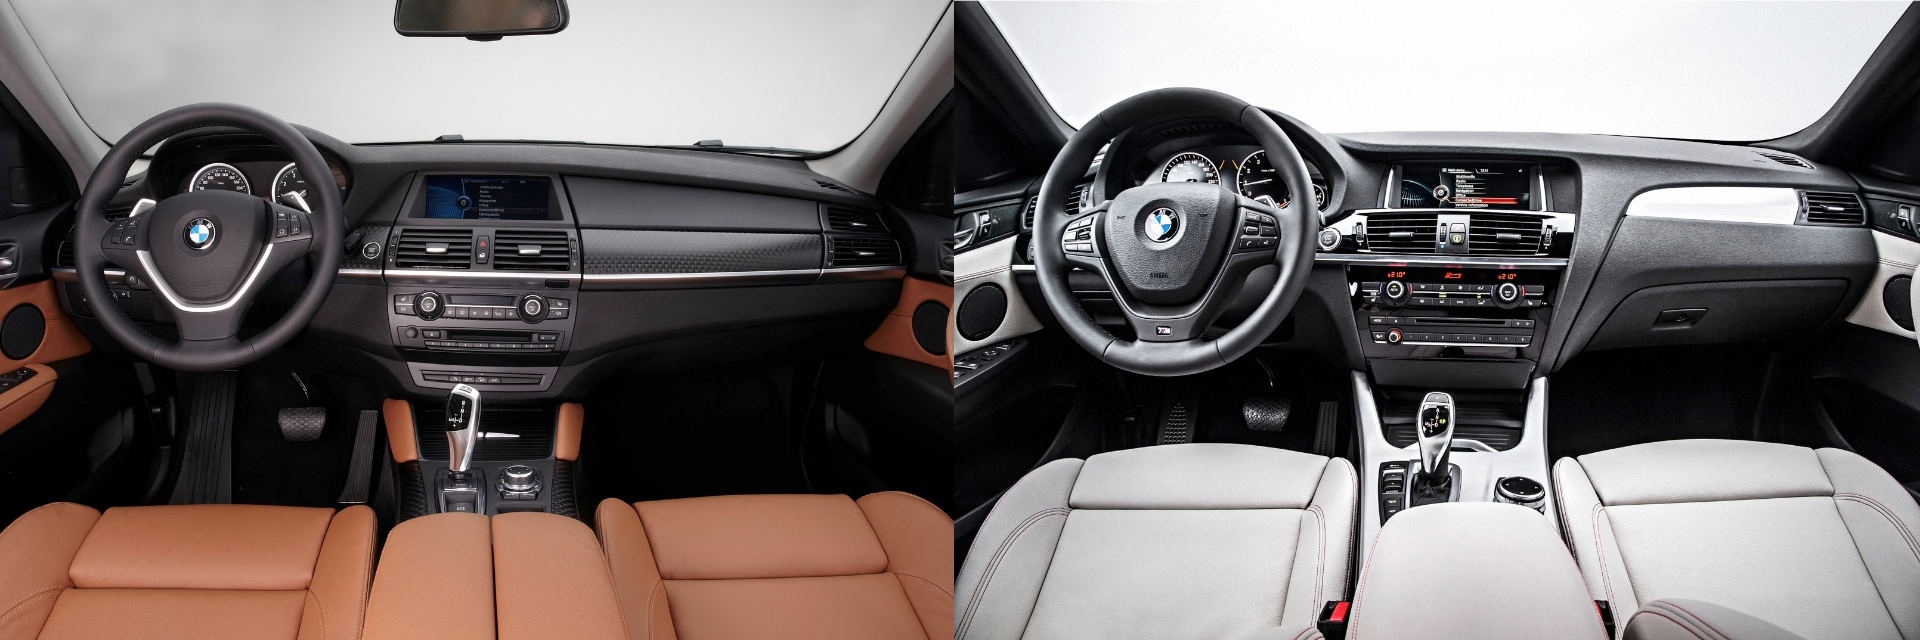 BMW X6 BMW X4 comparativa interior